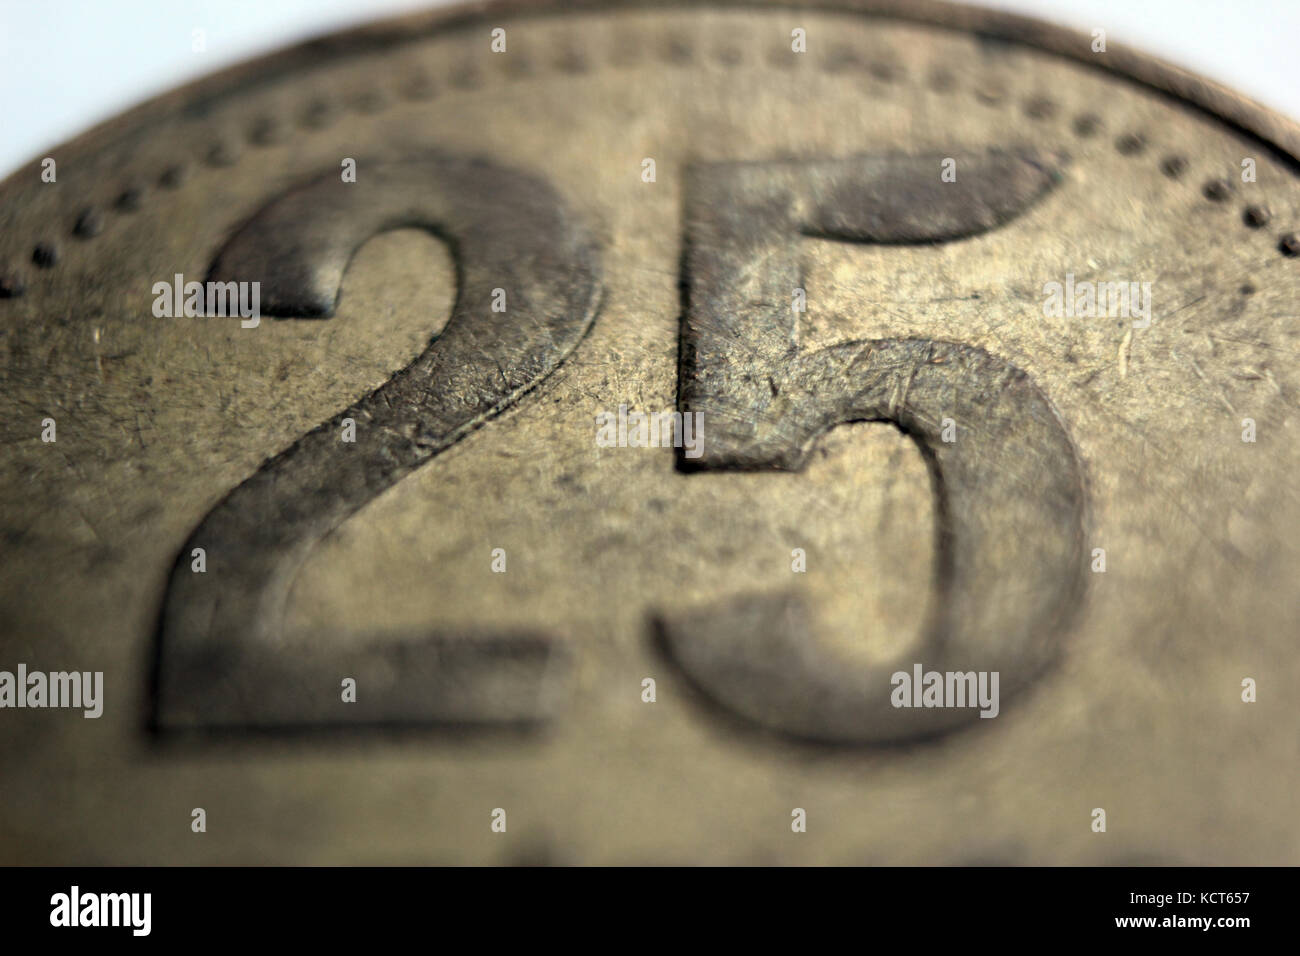 how to clean old copper pennies